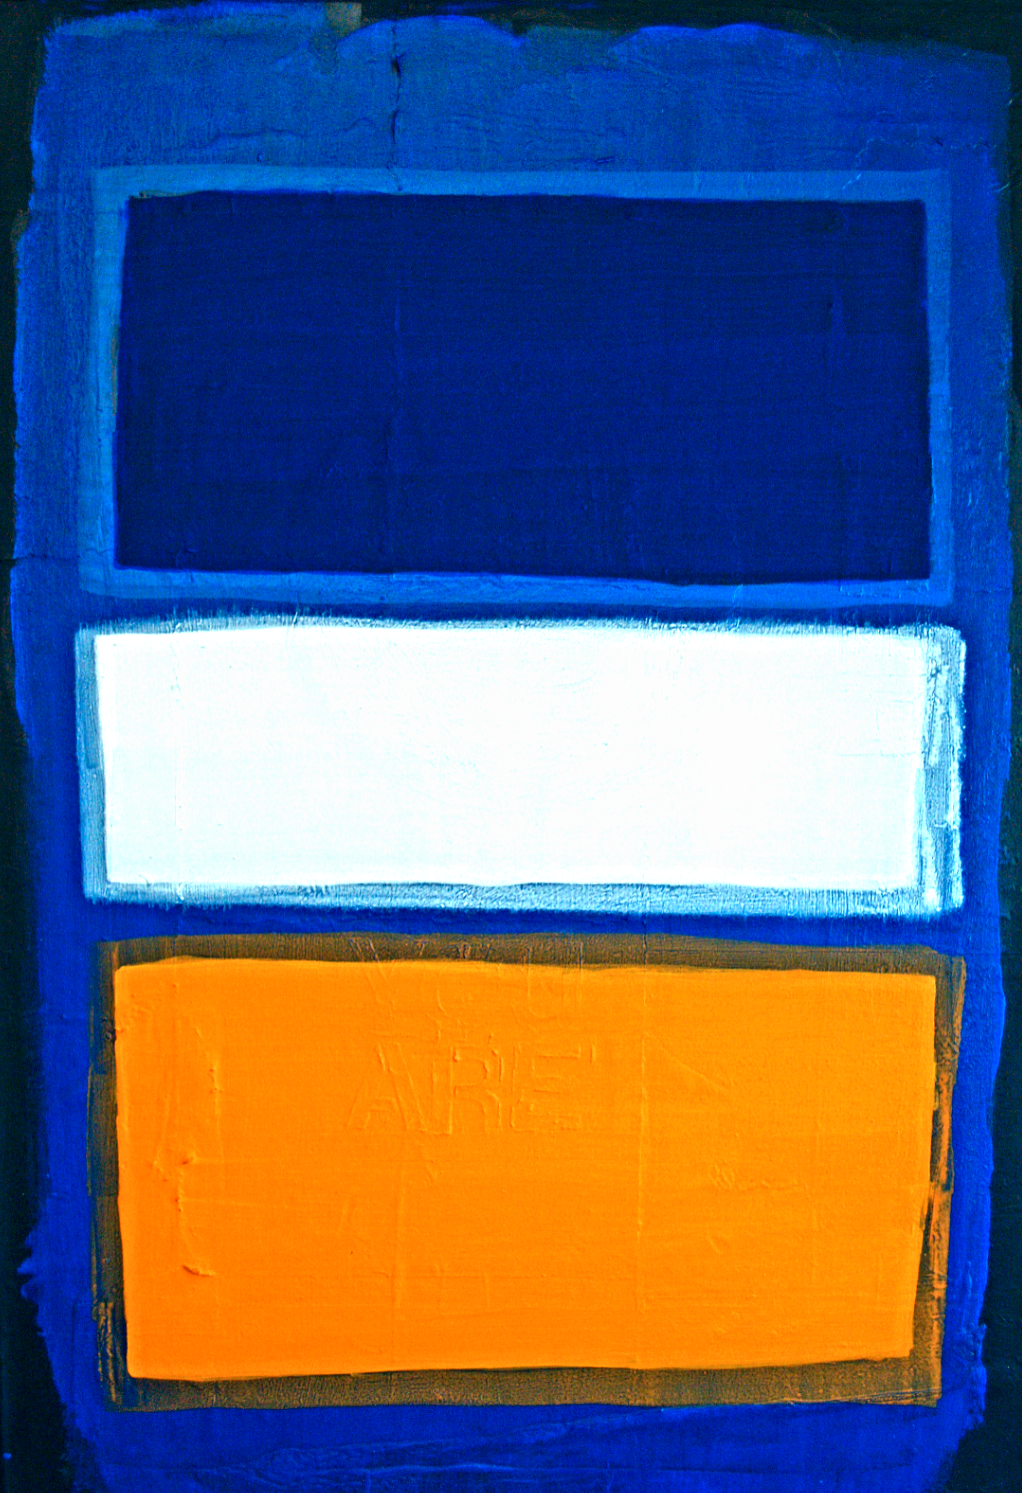 Oil, acrylic, enamel, paper on canvas - 24 x 36 inches - SOLD